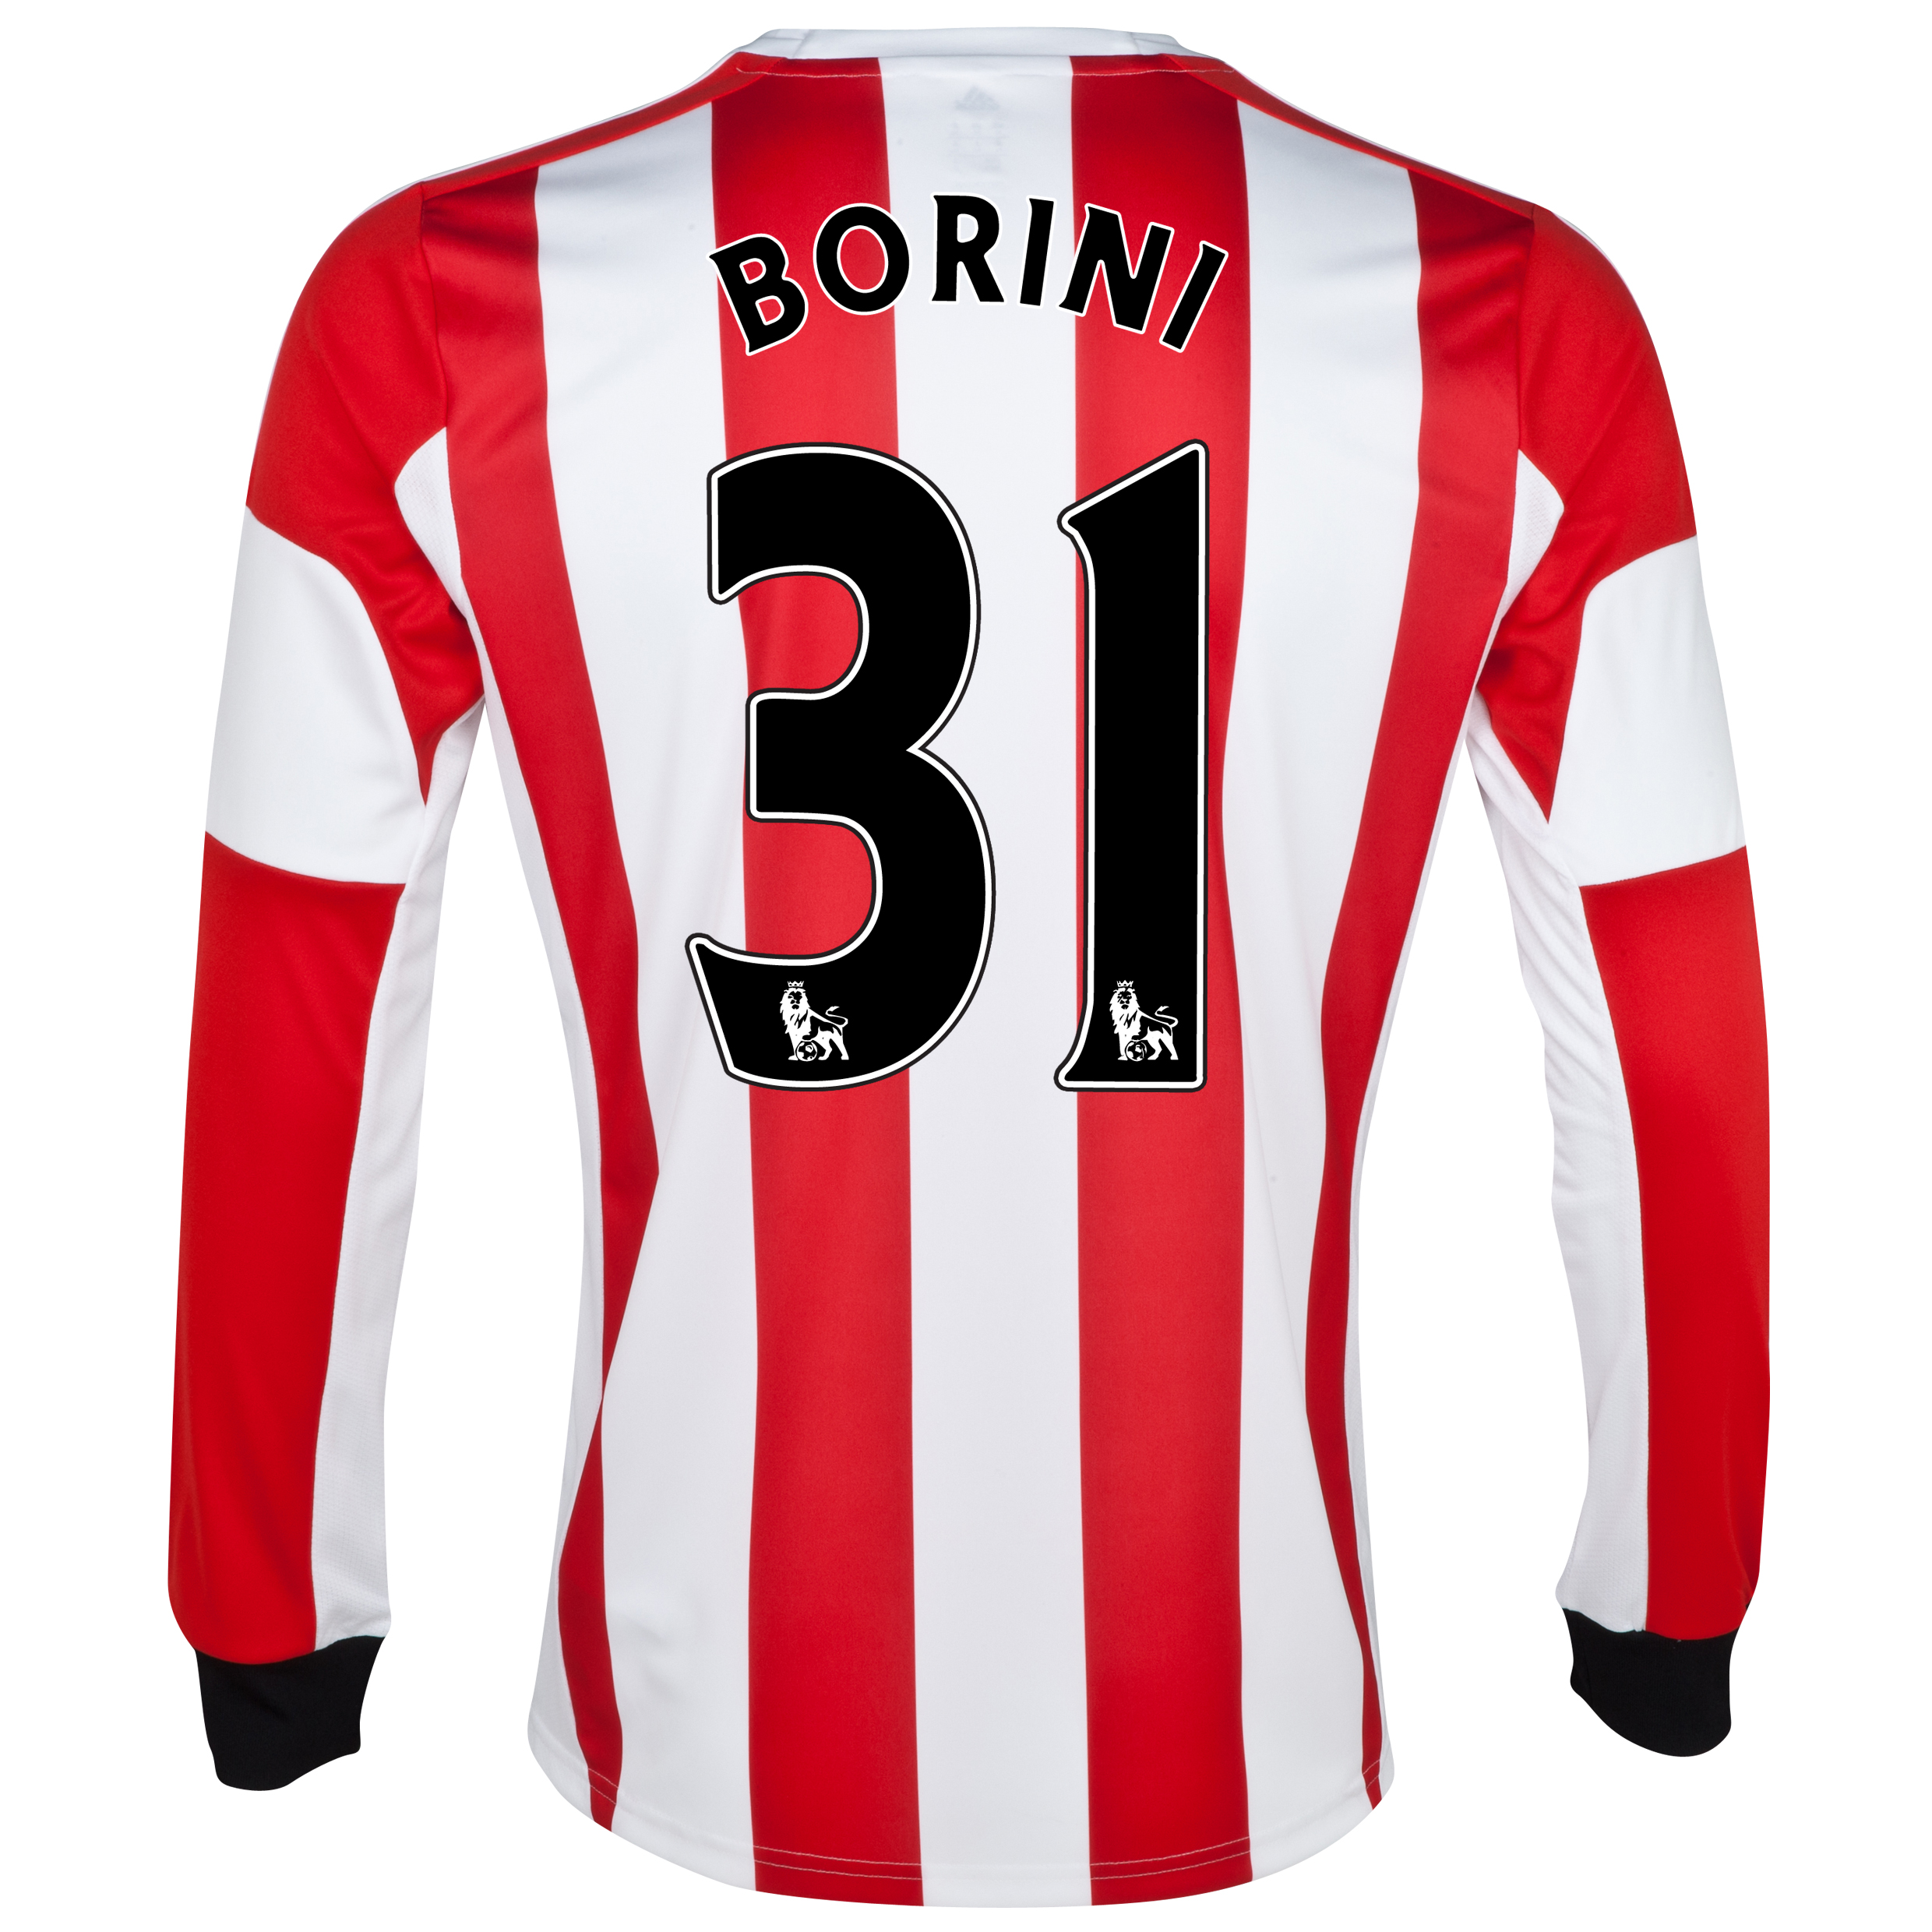 Sunderland Home Shirt 2013/14 - Long Sleeved - Junior with Borini 31 printing